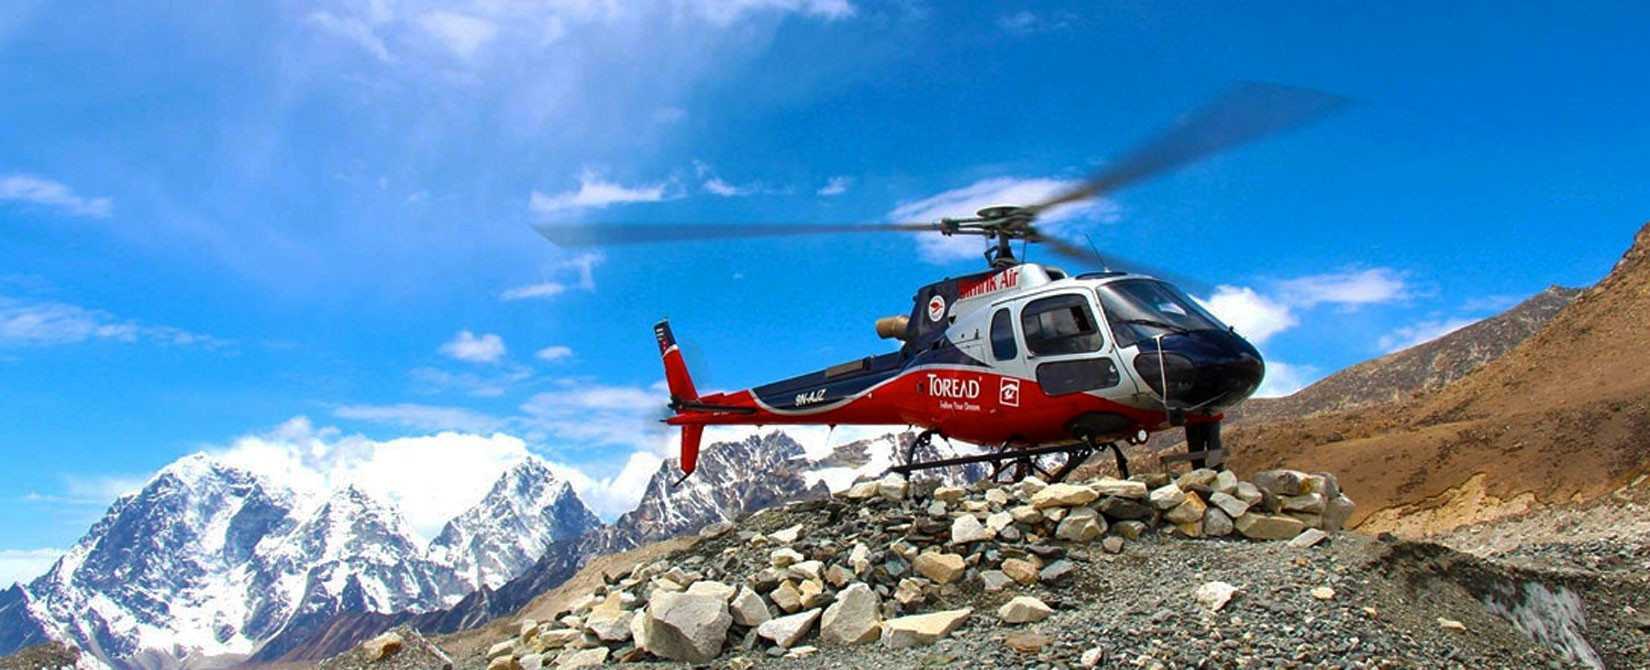 Langtang Valley Heli Tour